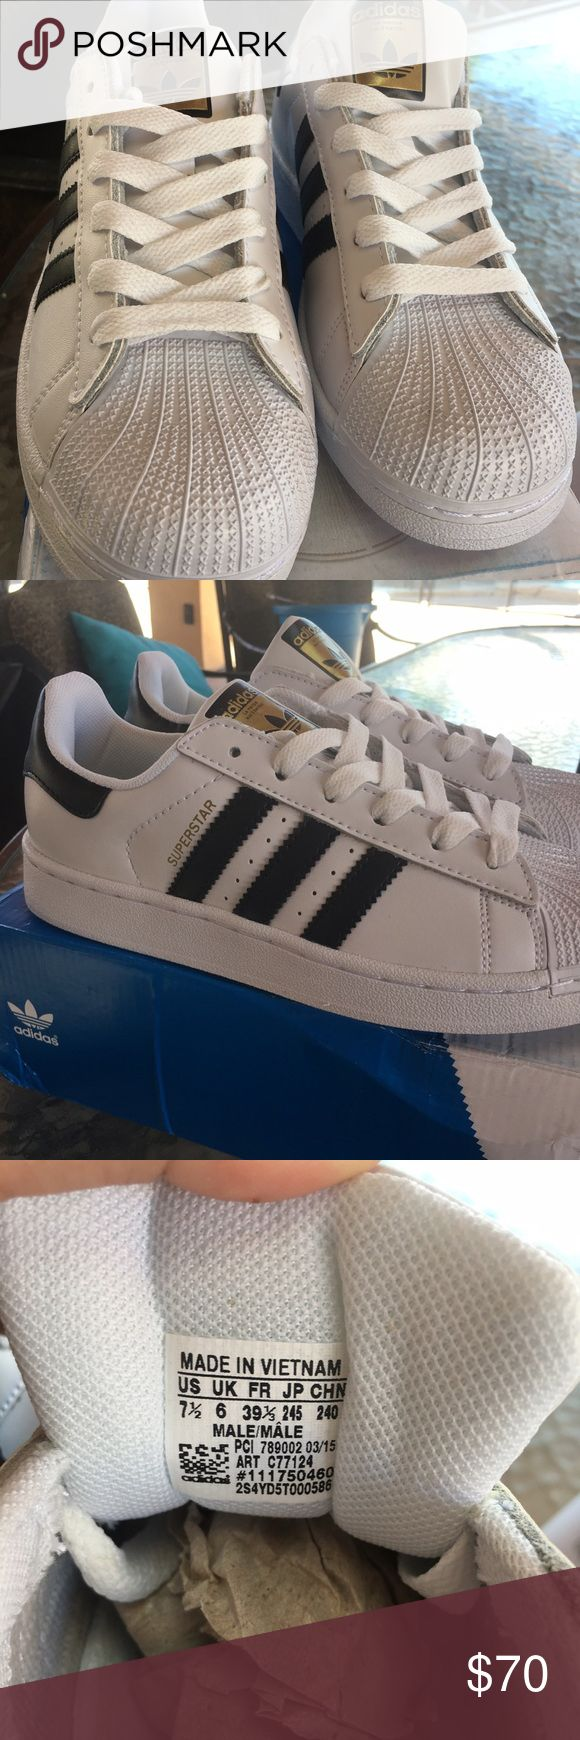 adidas superstar frauengröße 8 amazon adidas gazelle herren senf